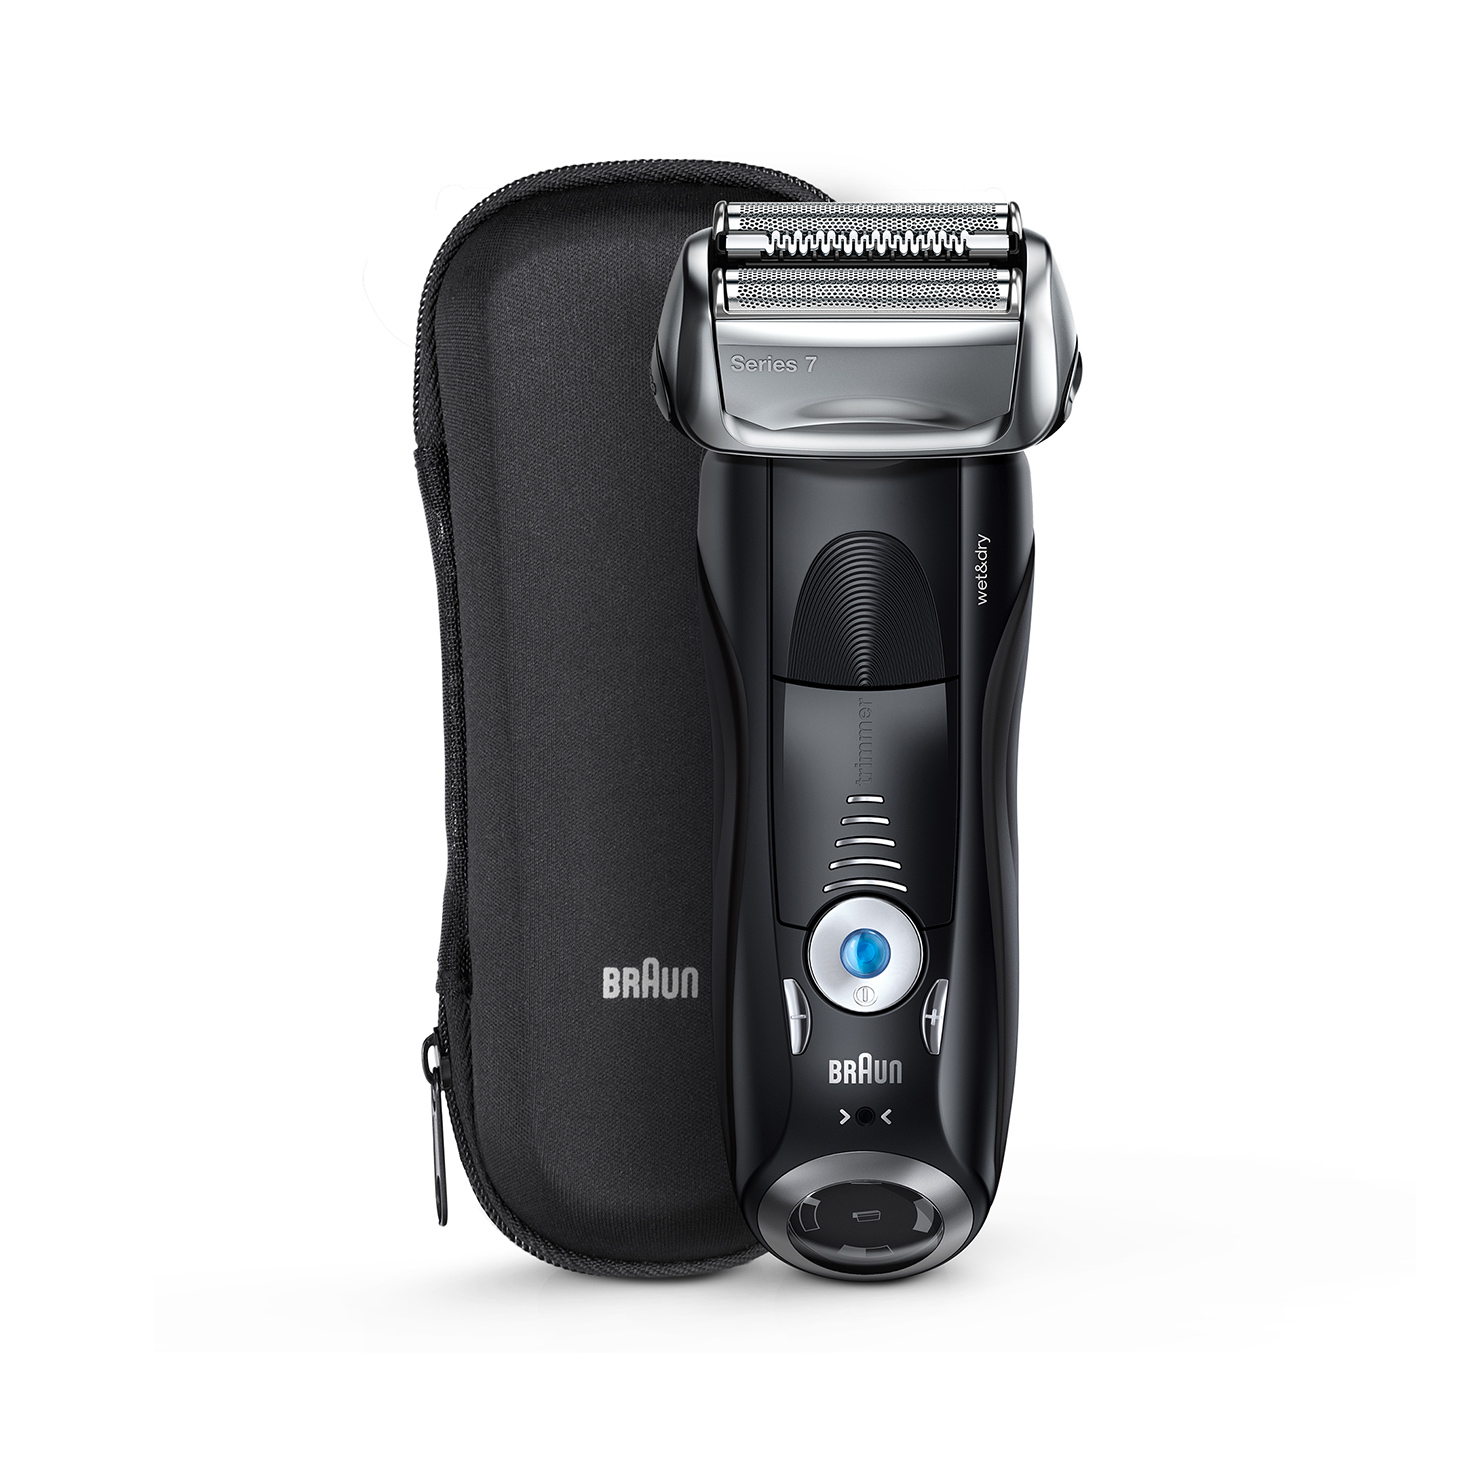 Braun Series 7 black electric shaver